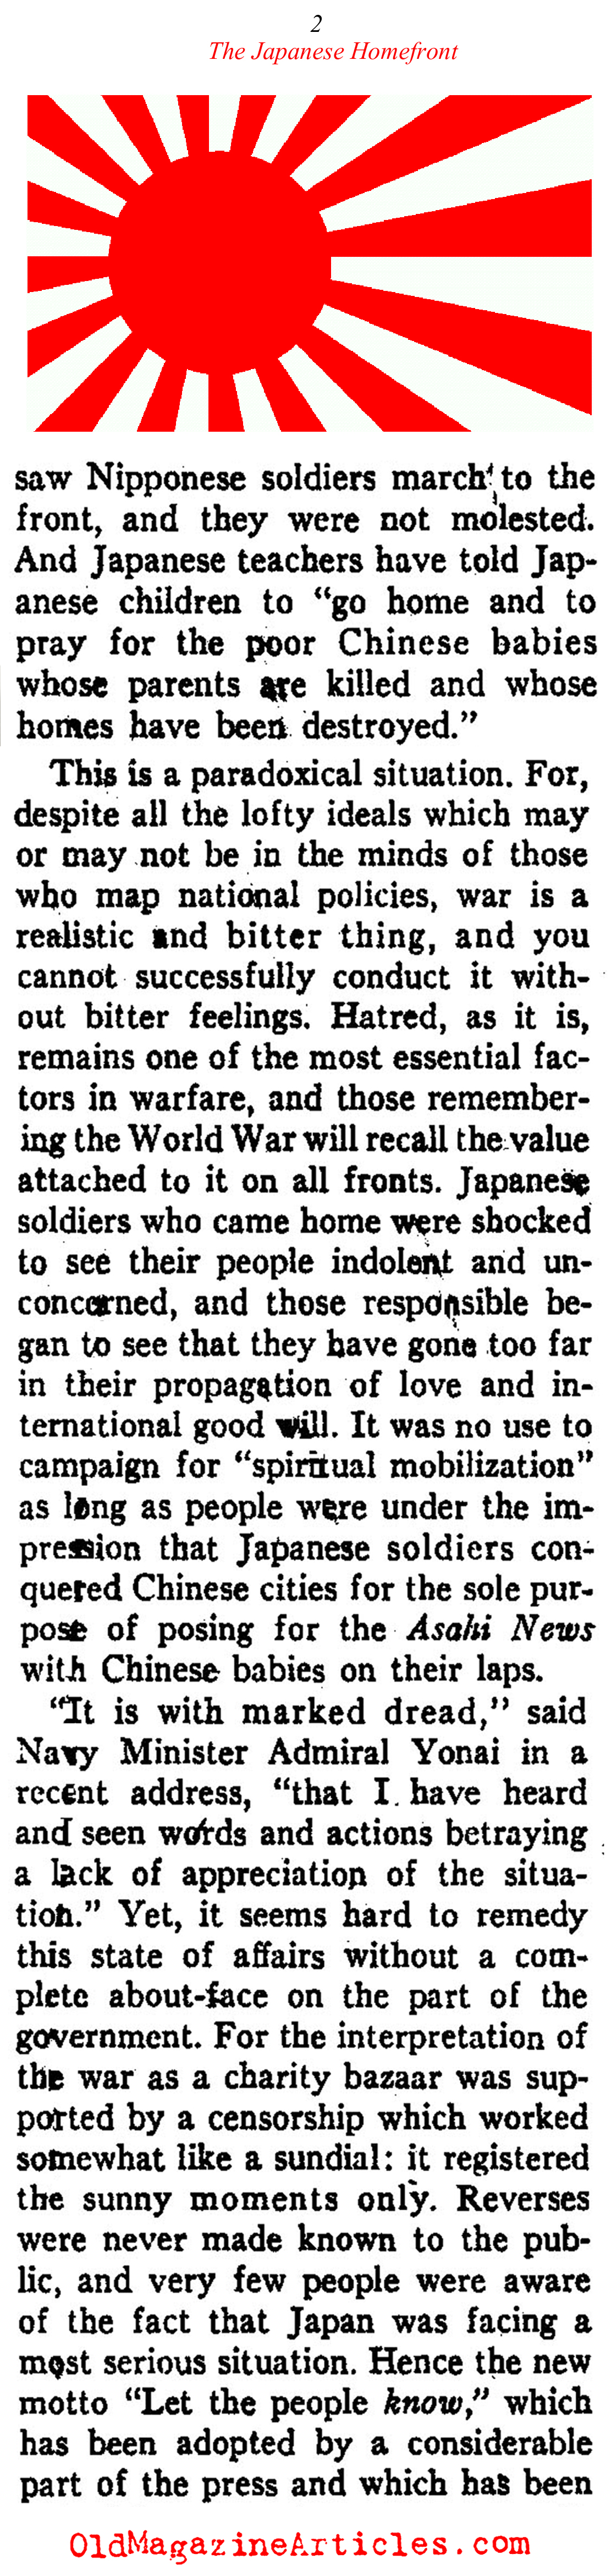 The Japanese Homefront (Ken Magazine, 1938)